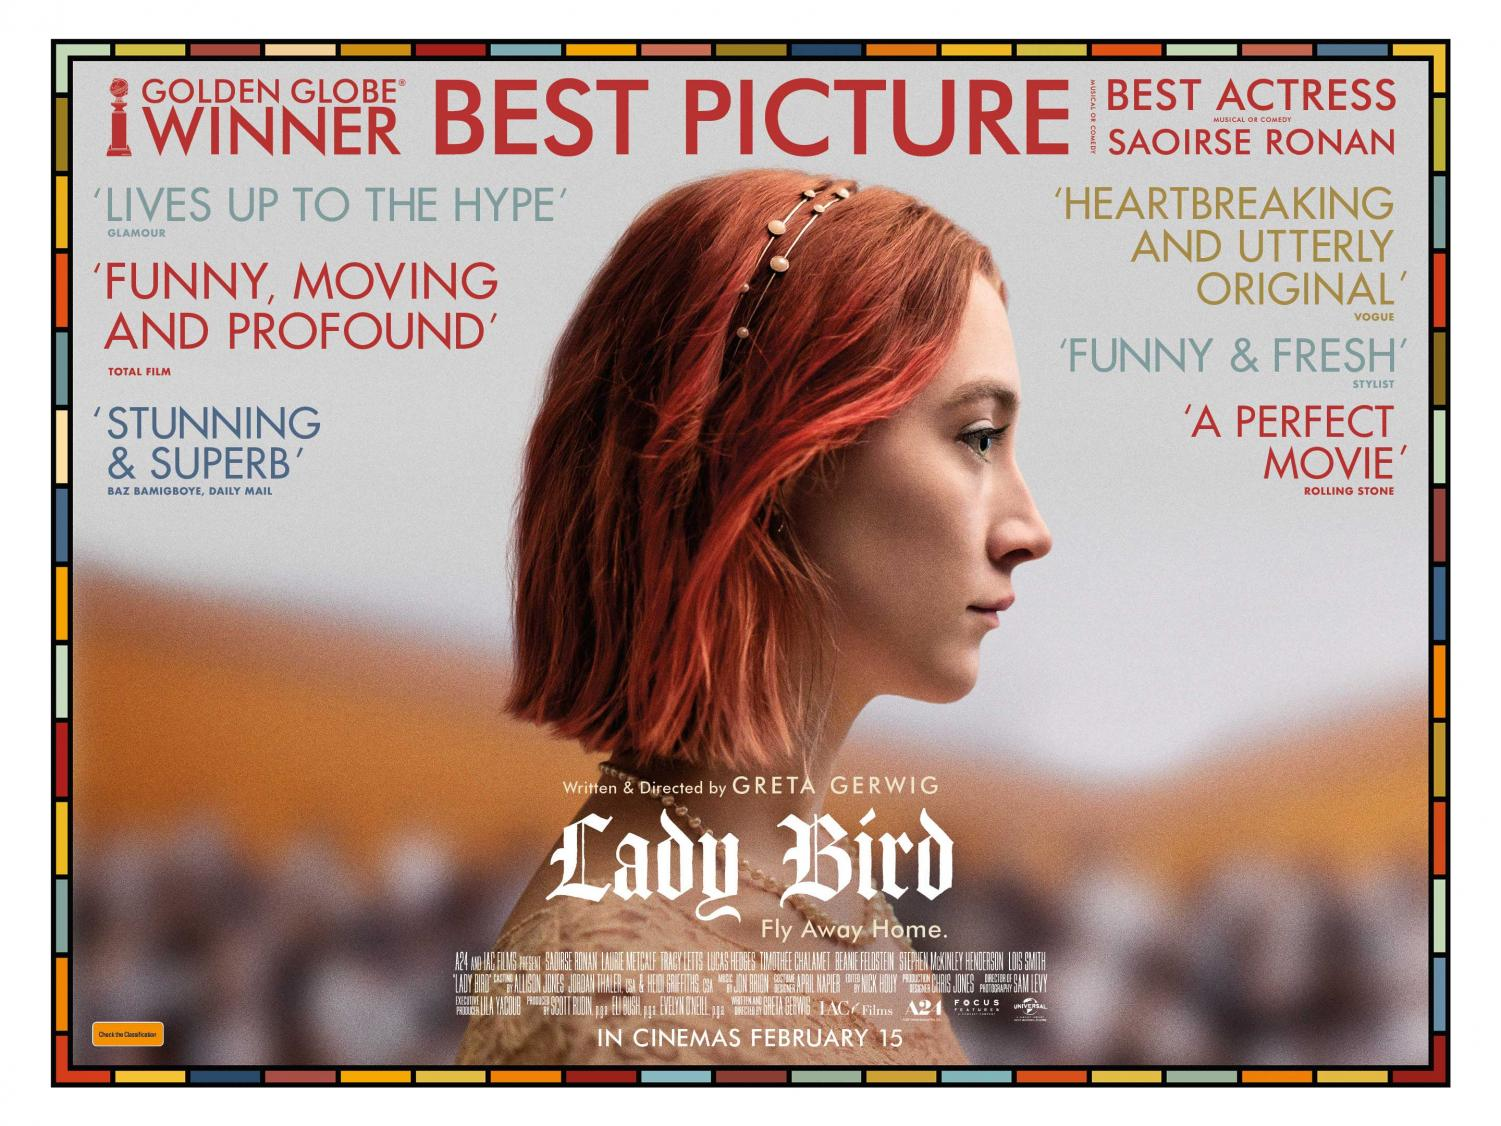 Greta Gerwig's Lady Bird is nominated for five Academy Awards.